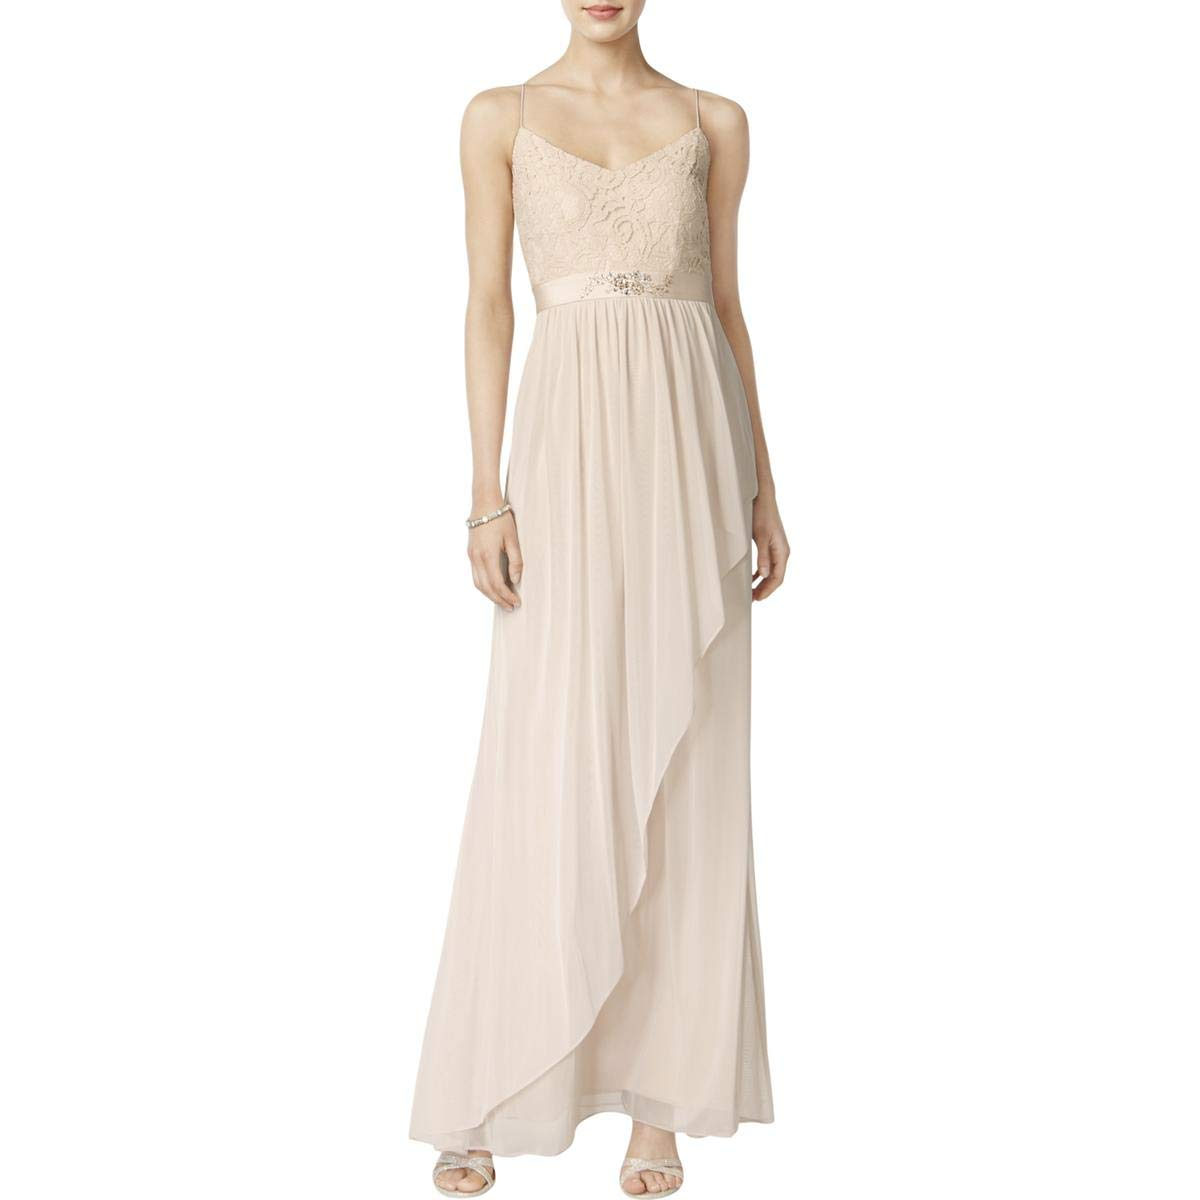 Almond Adrianna Papell Womens FullLength Embellished Evening Dress